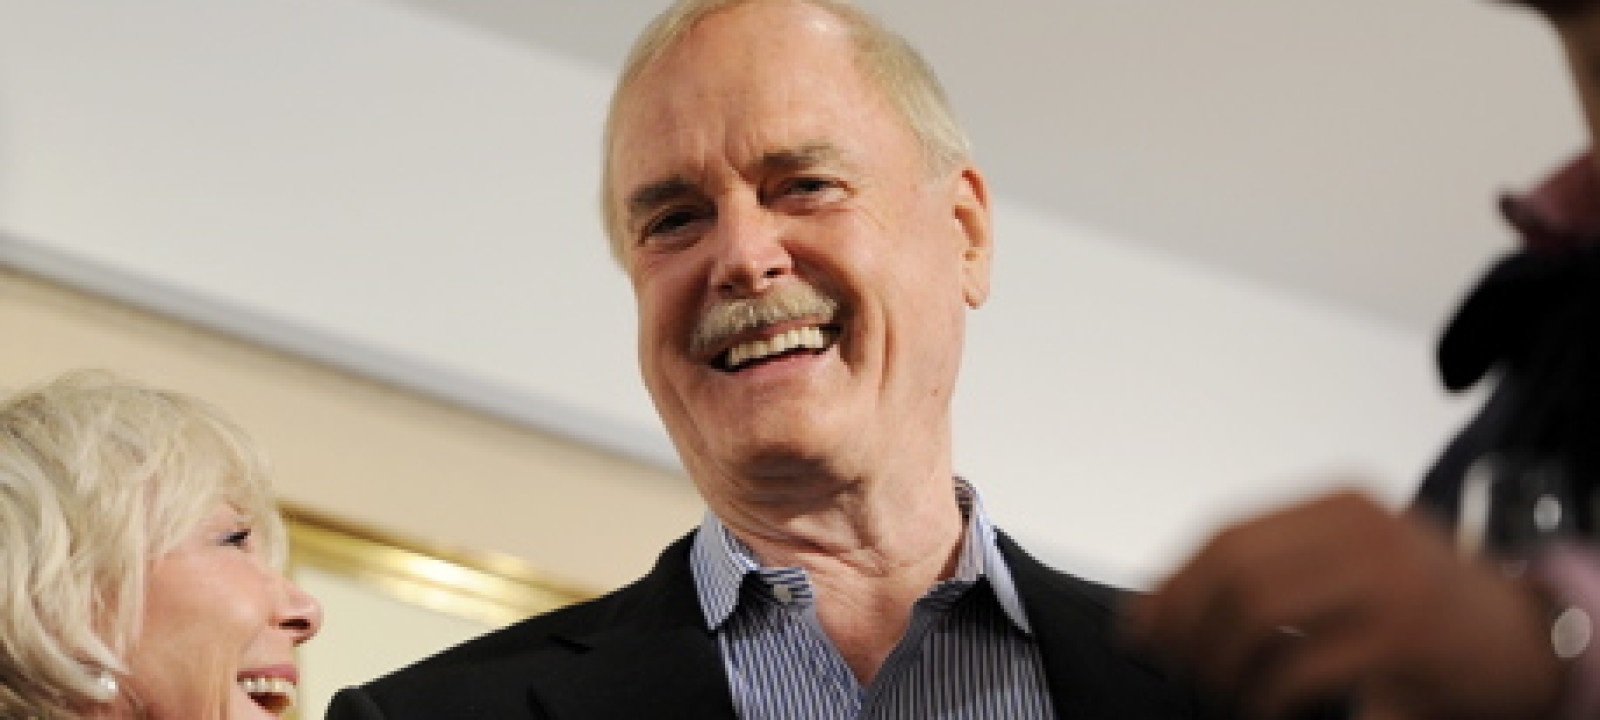 Forum on this topic: John Cleese to star in BBC comedy , john-cleese-to-star-in-bbc-comedy/